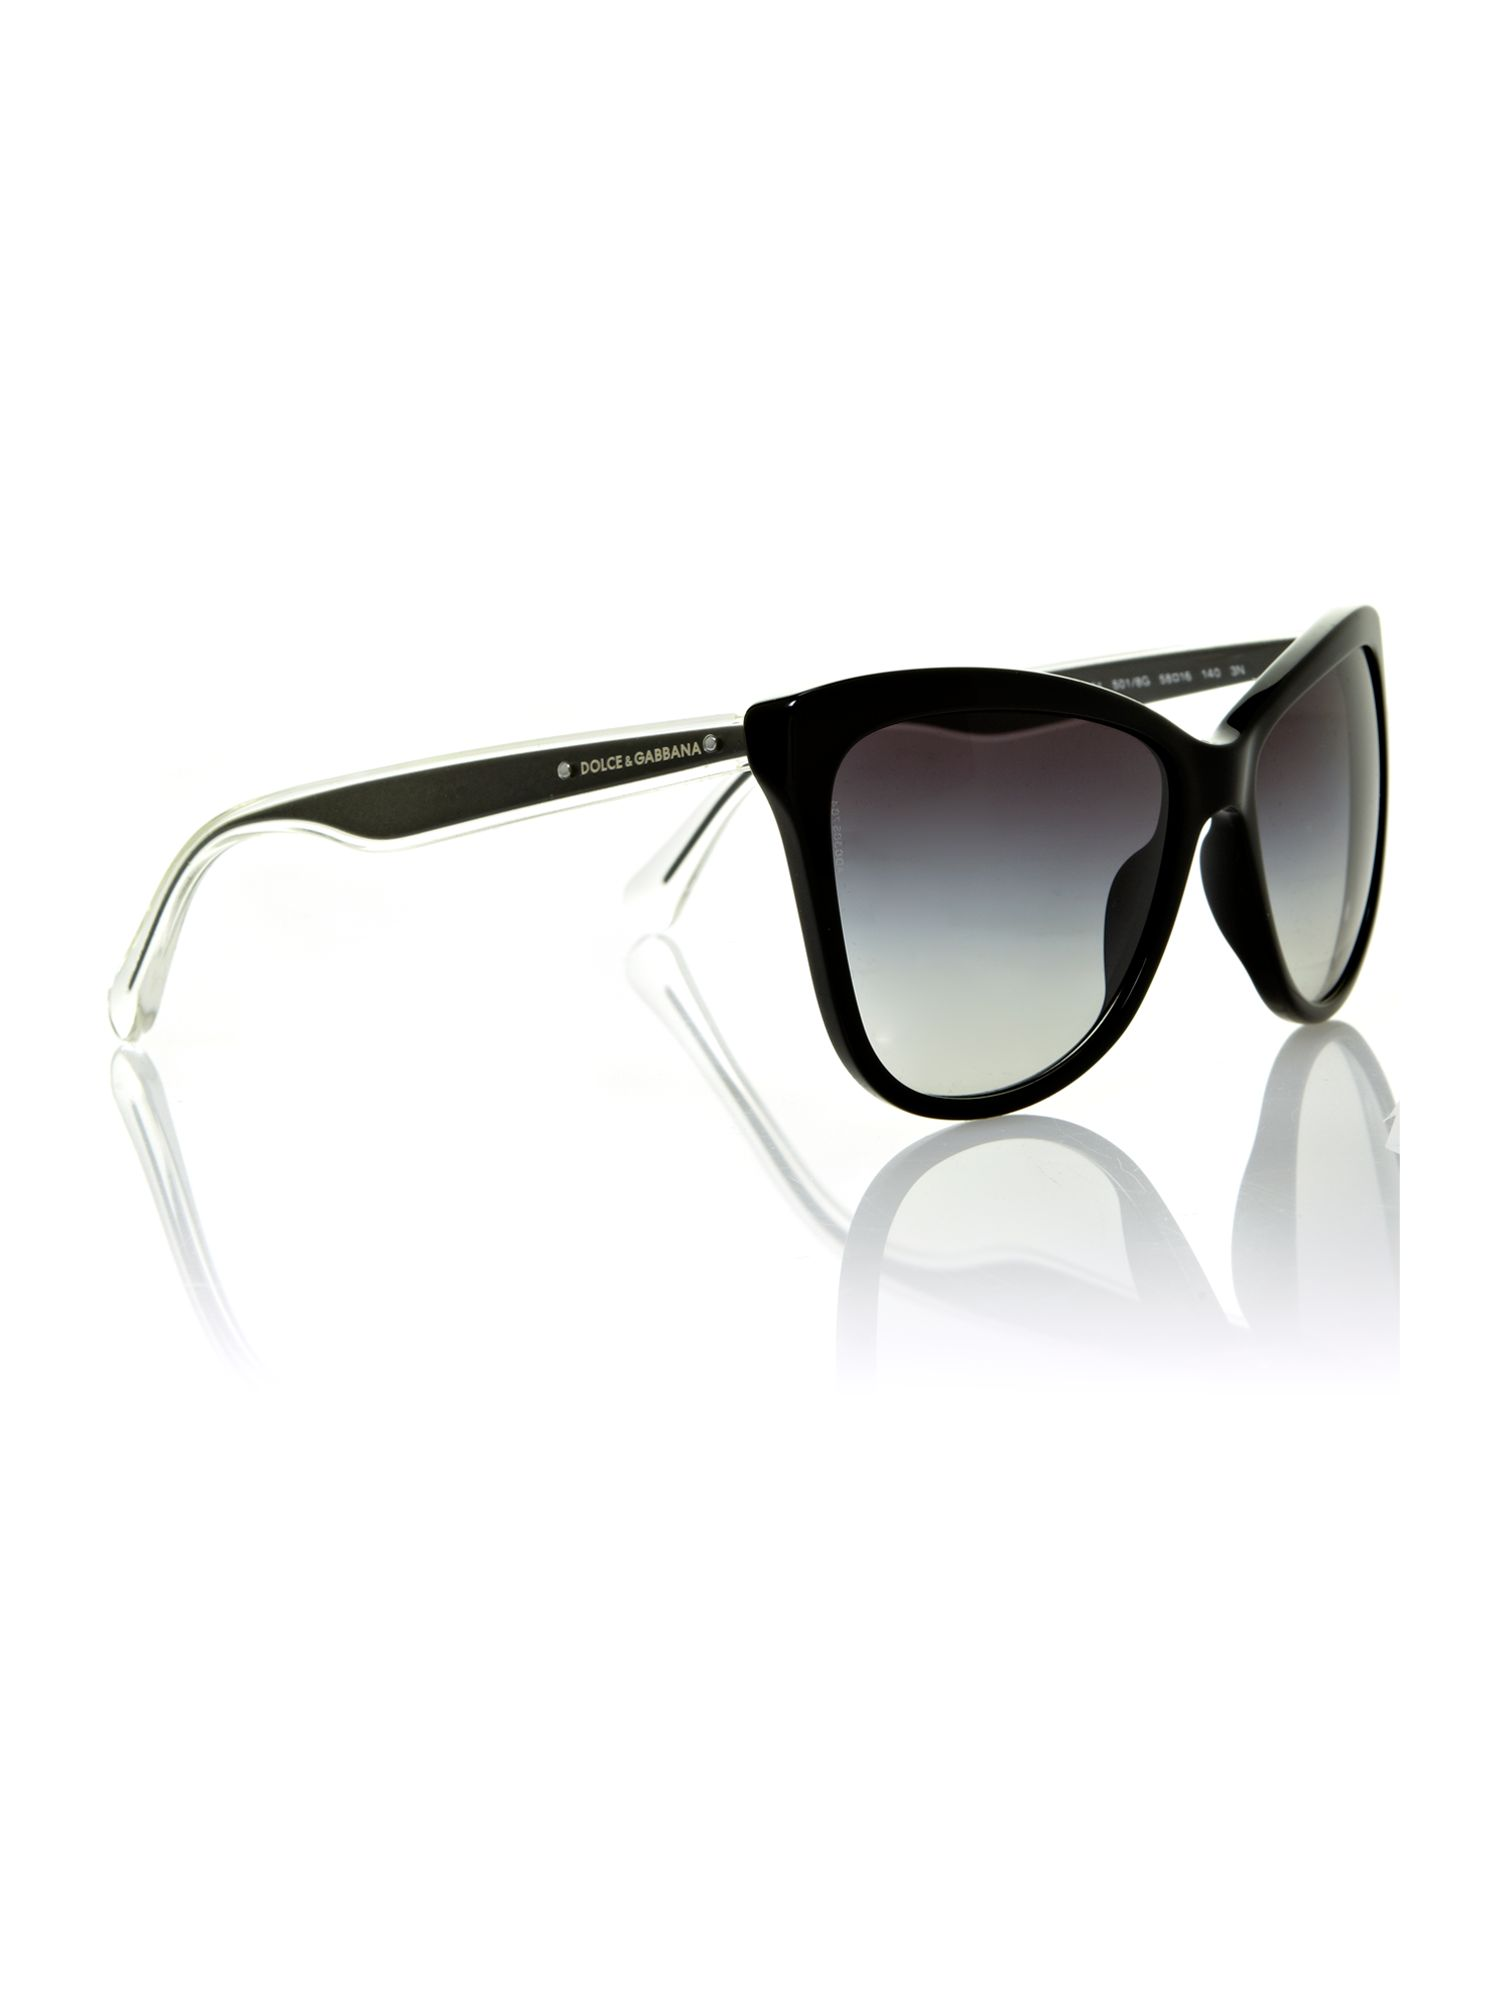 Ladies DG4151 mambo sunglasses